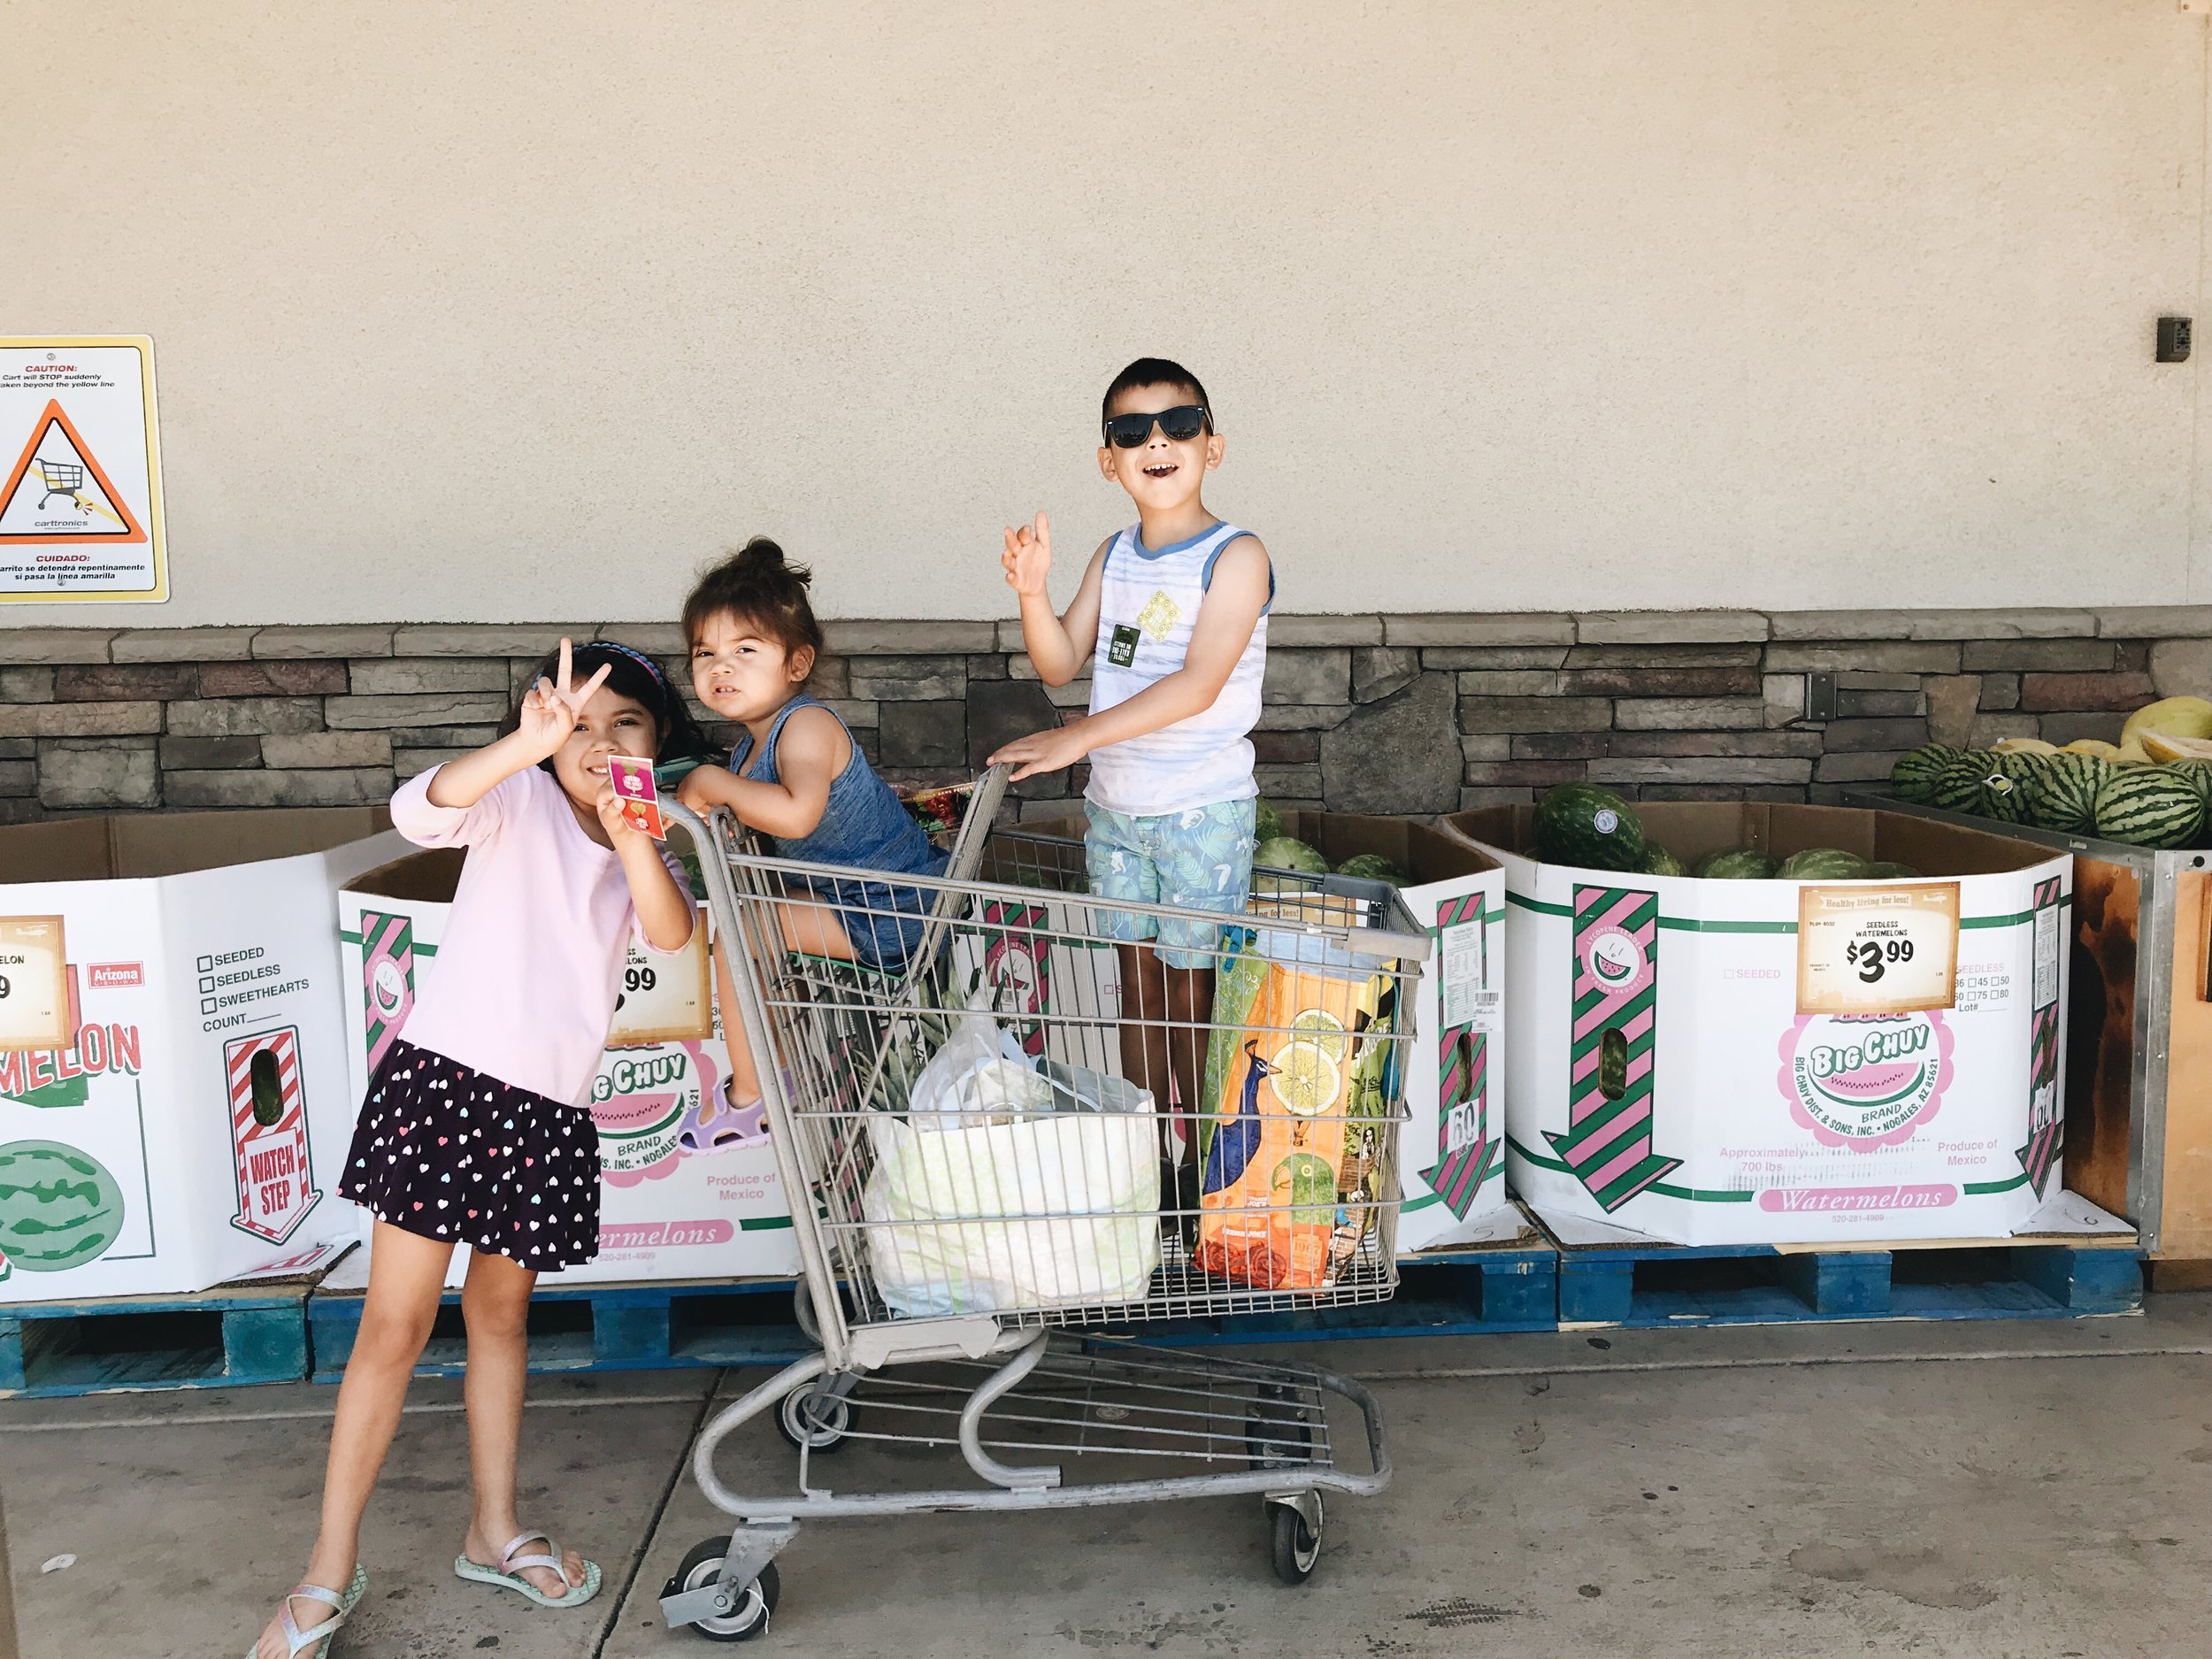 SHOPPING AT SPROUTS WITH KIDS